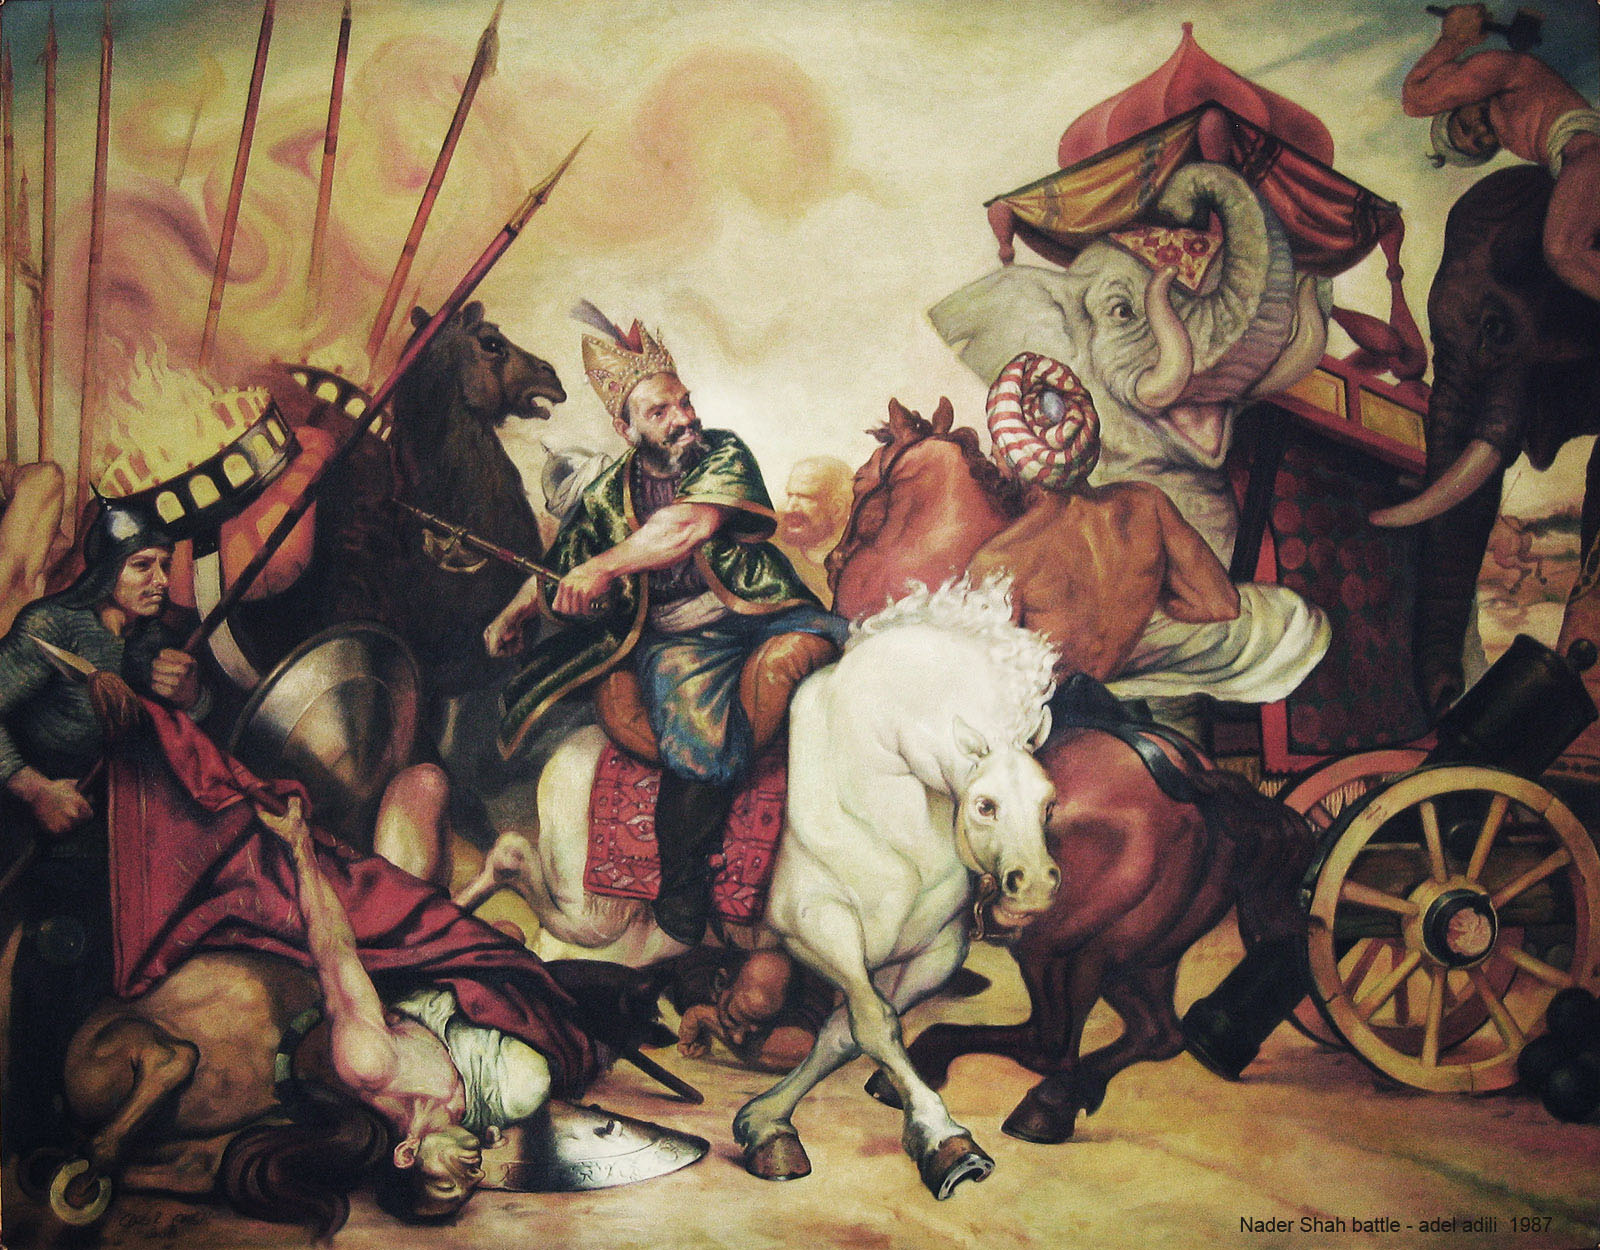 Portrayal of Nader Shah in the battle of Karnal by Adel Adili